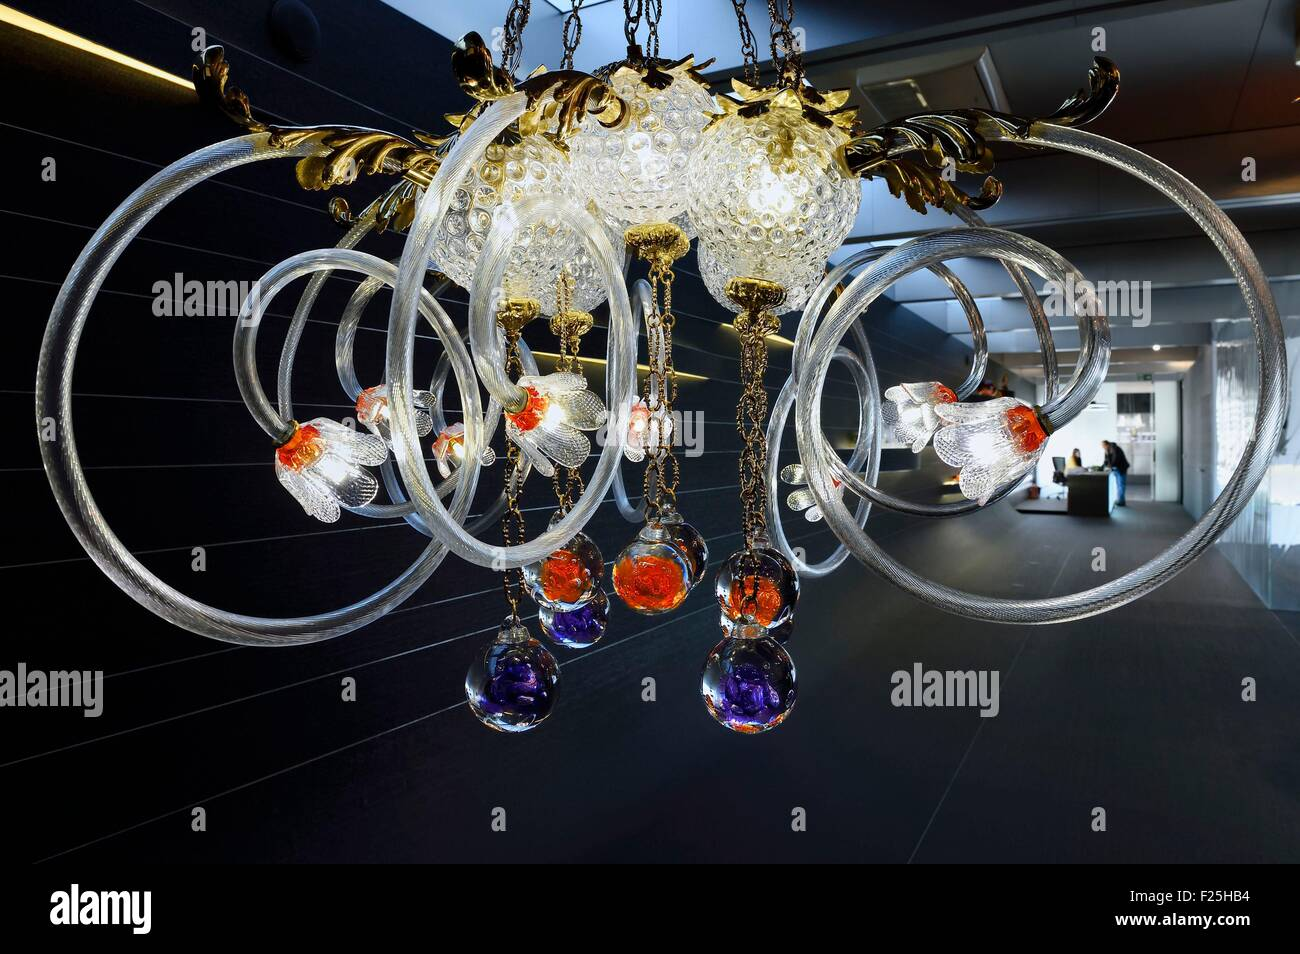 Czech Republic, Prague, Lasvit glassware show room, luster - Stock Image